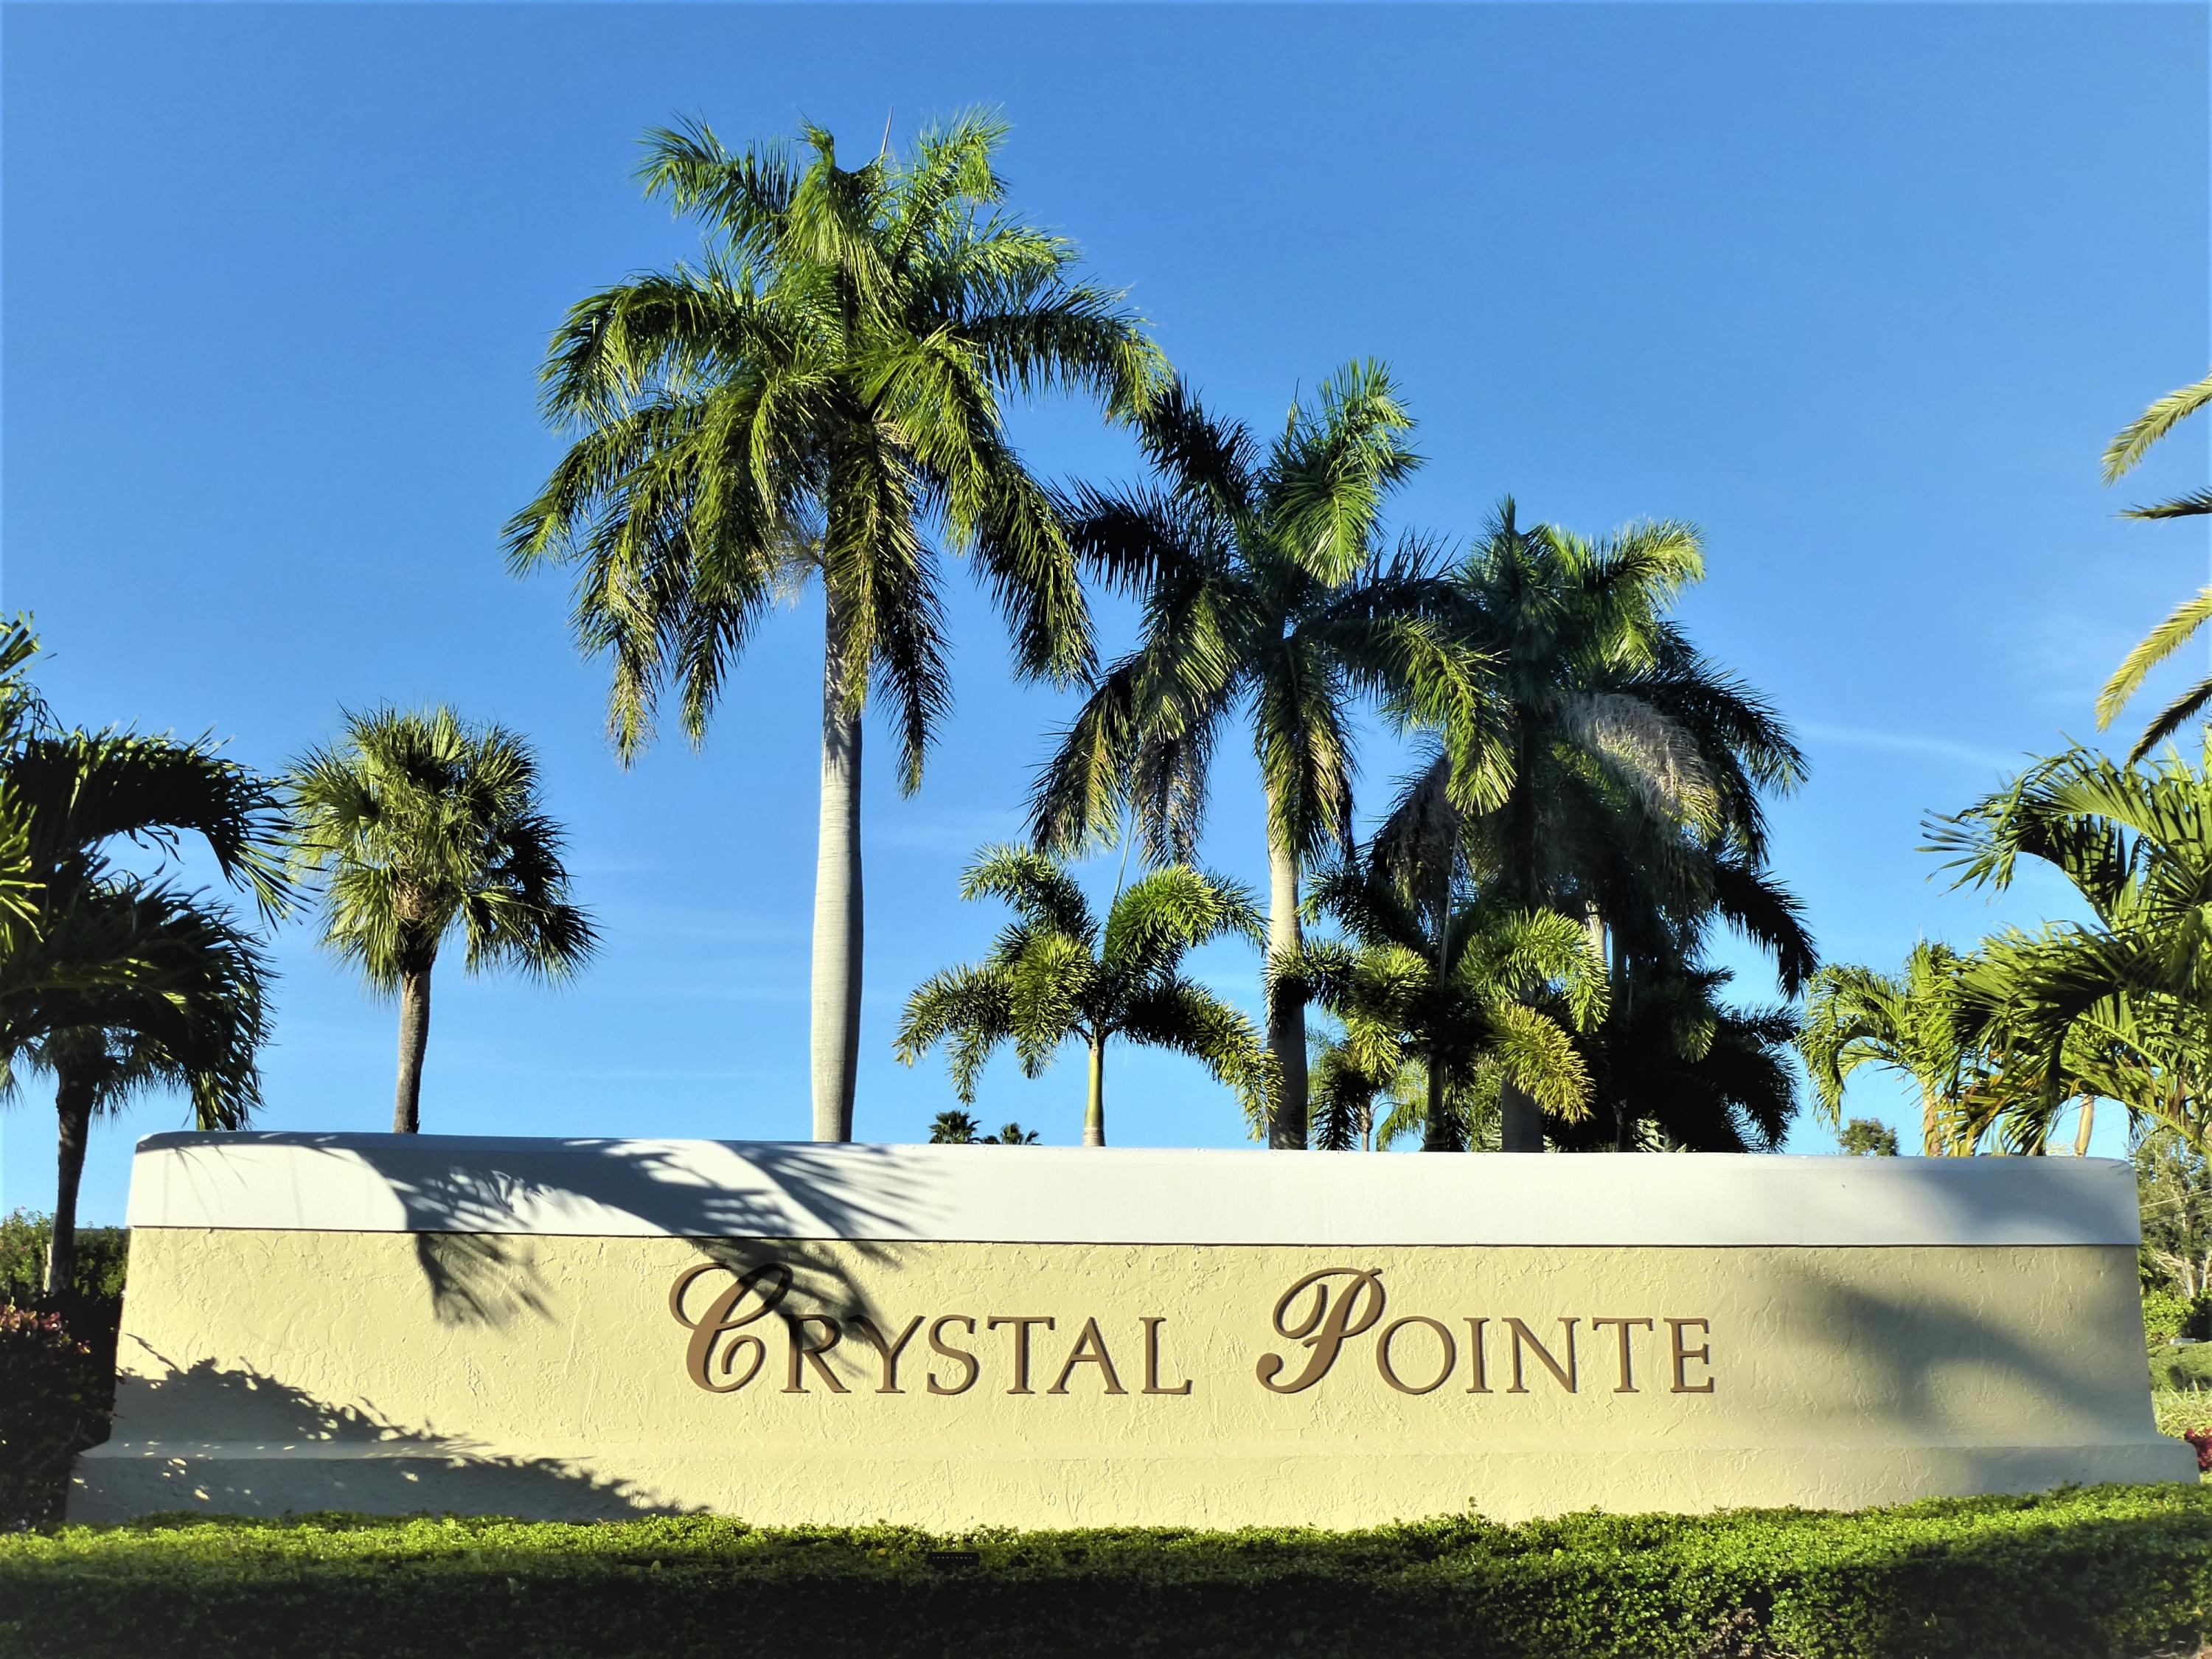 CRYSTAL POINTE REALTY